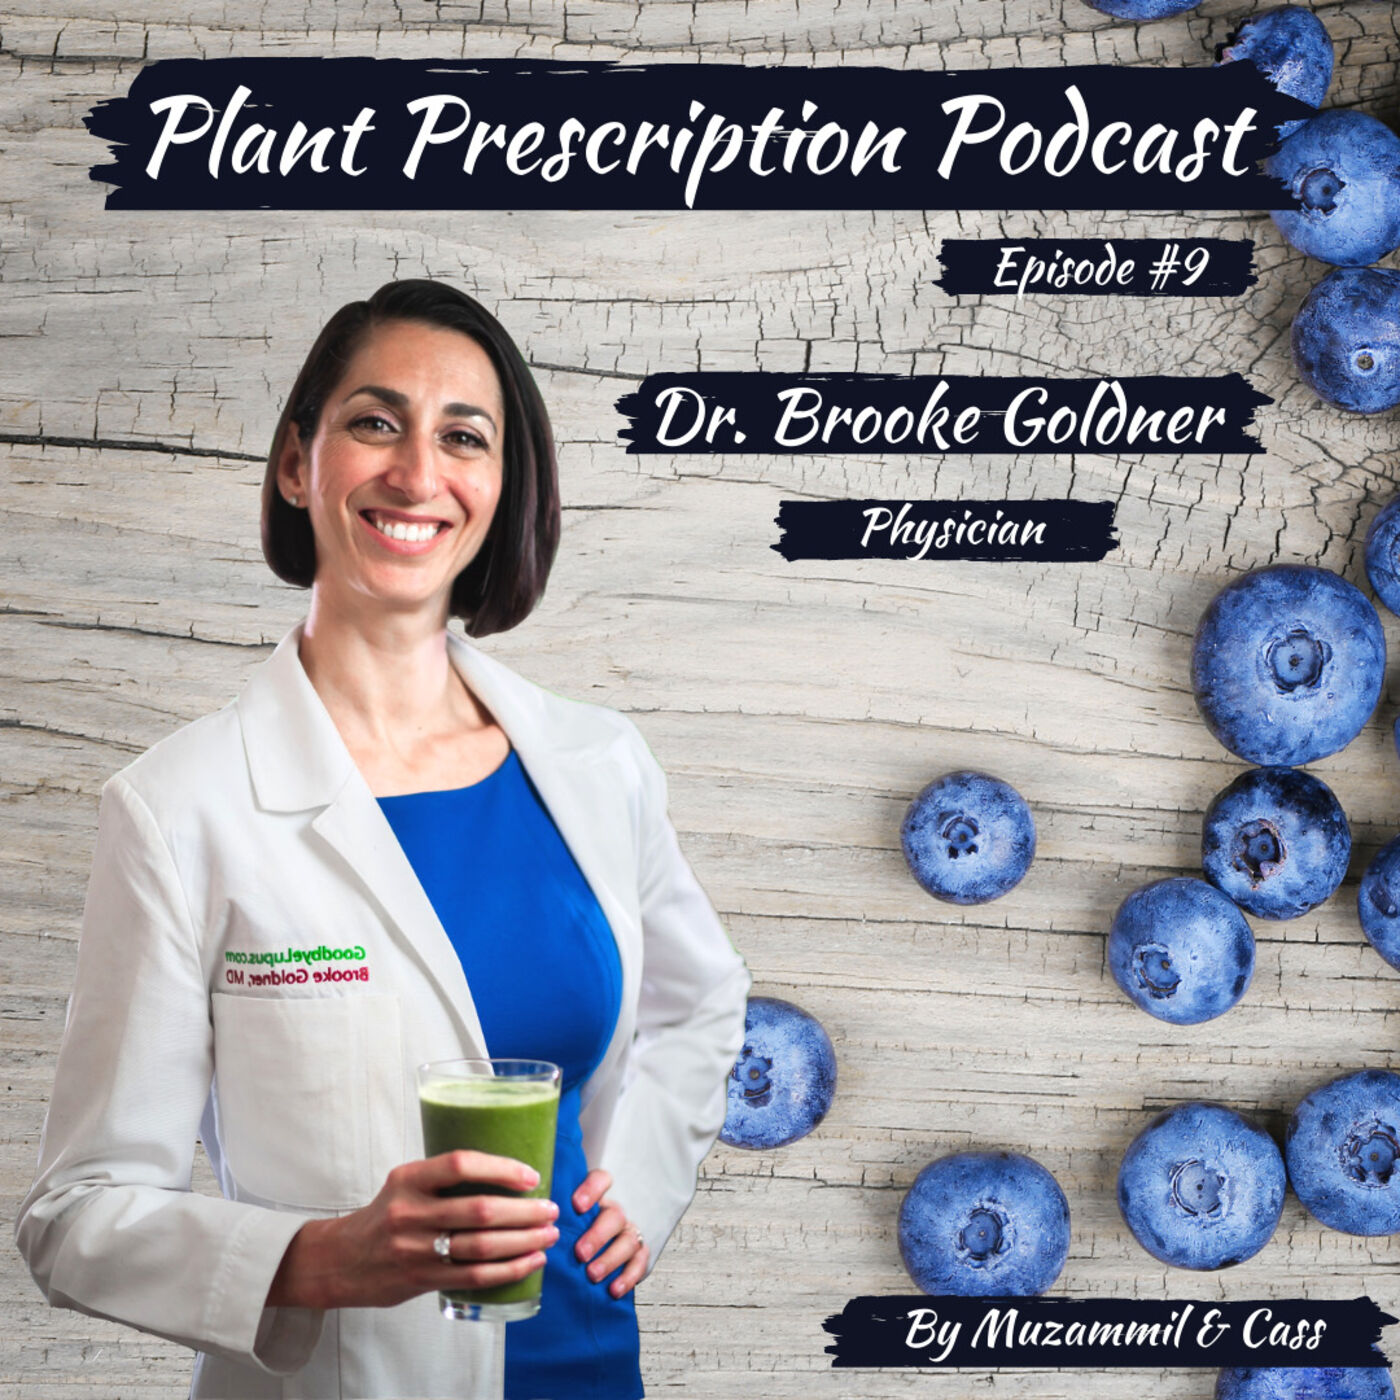 Reversing autoimmune diseases, gene expression, and our body programmed to repair itself with Dr. Brooke Goldner